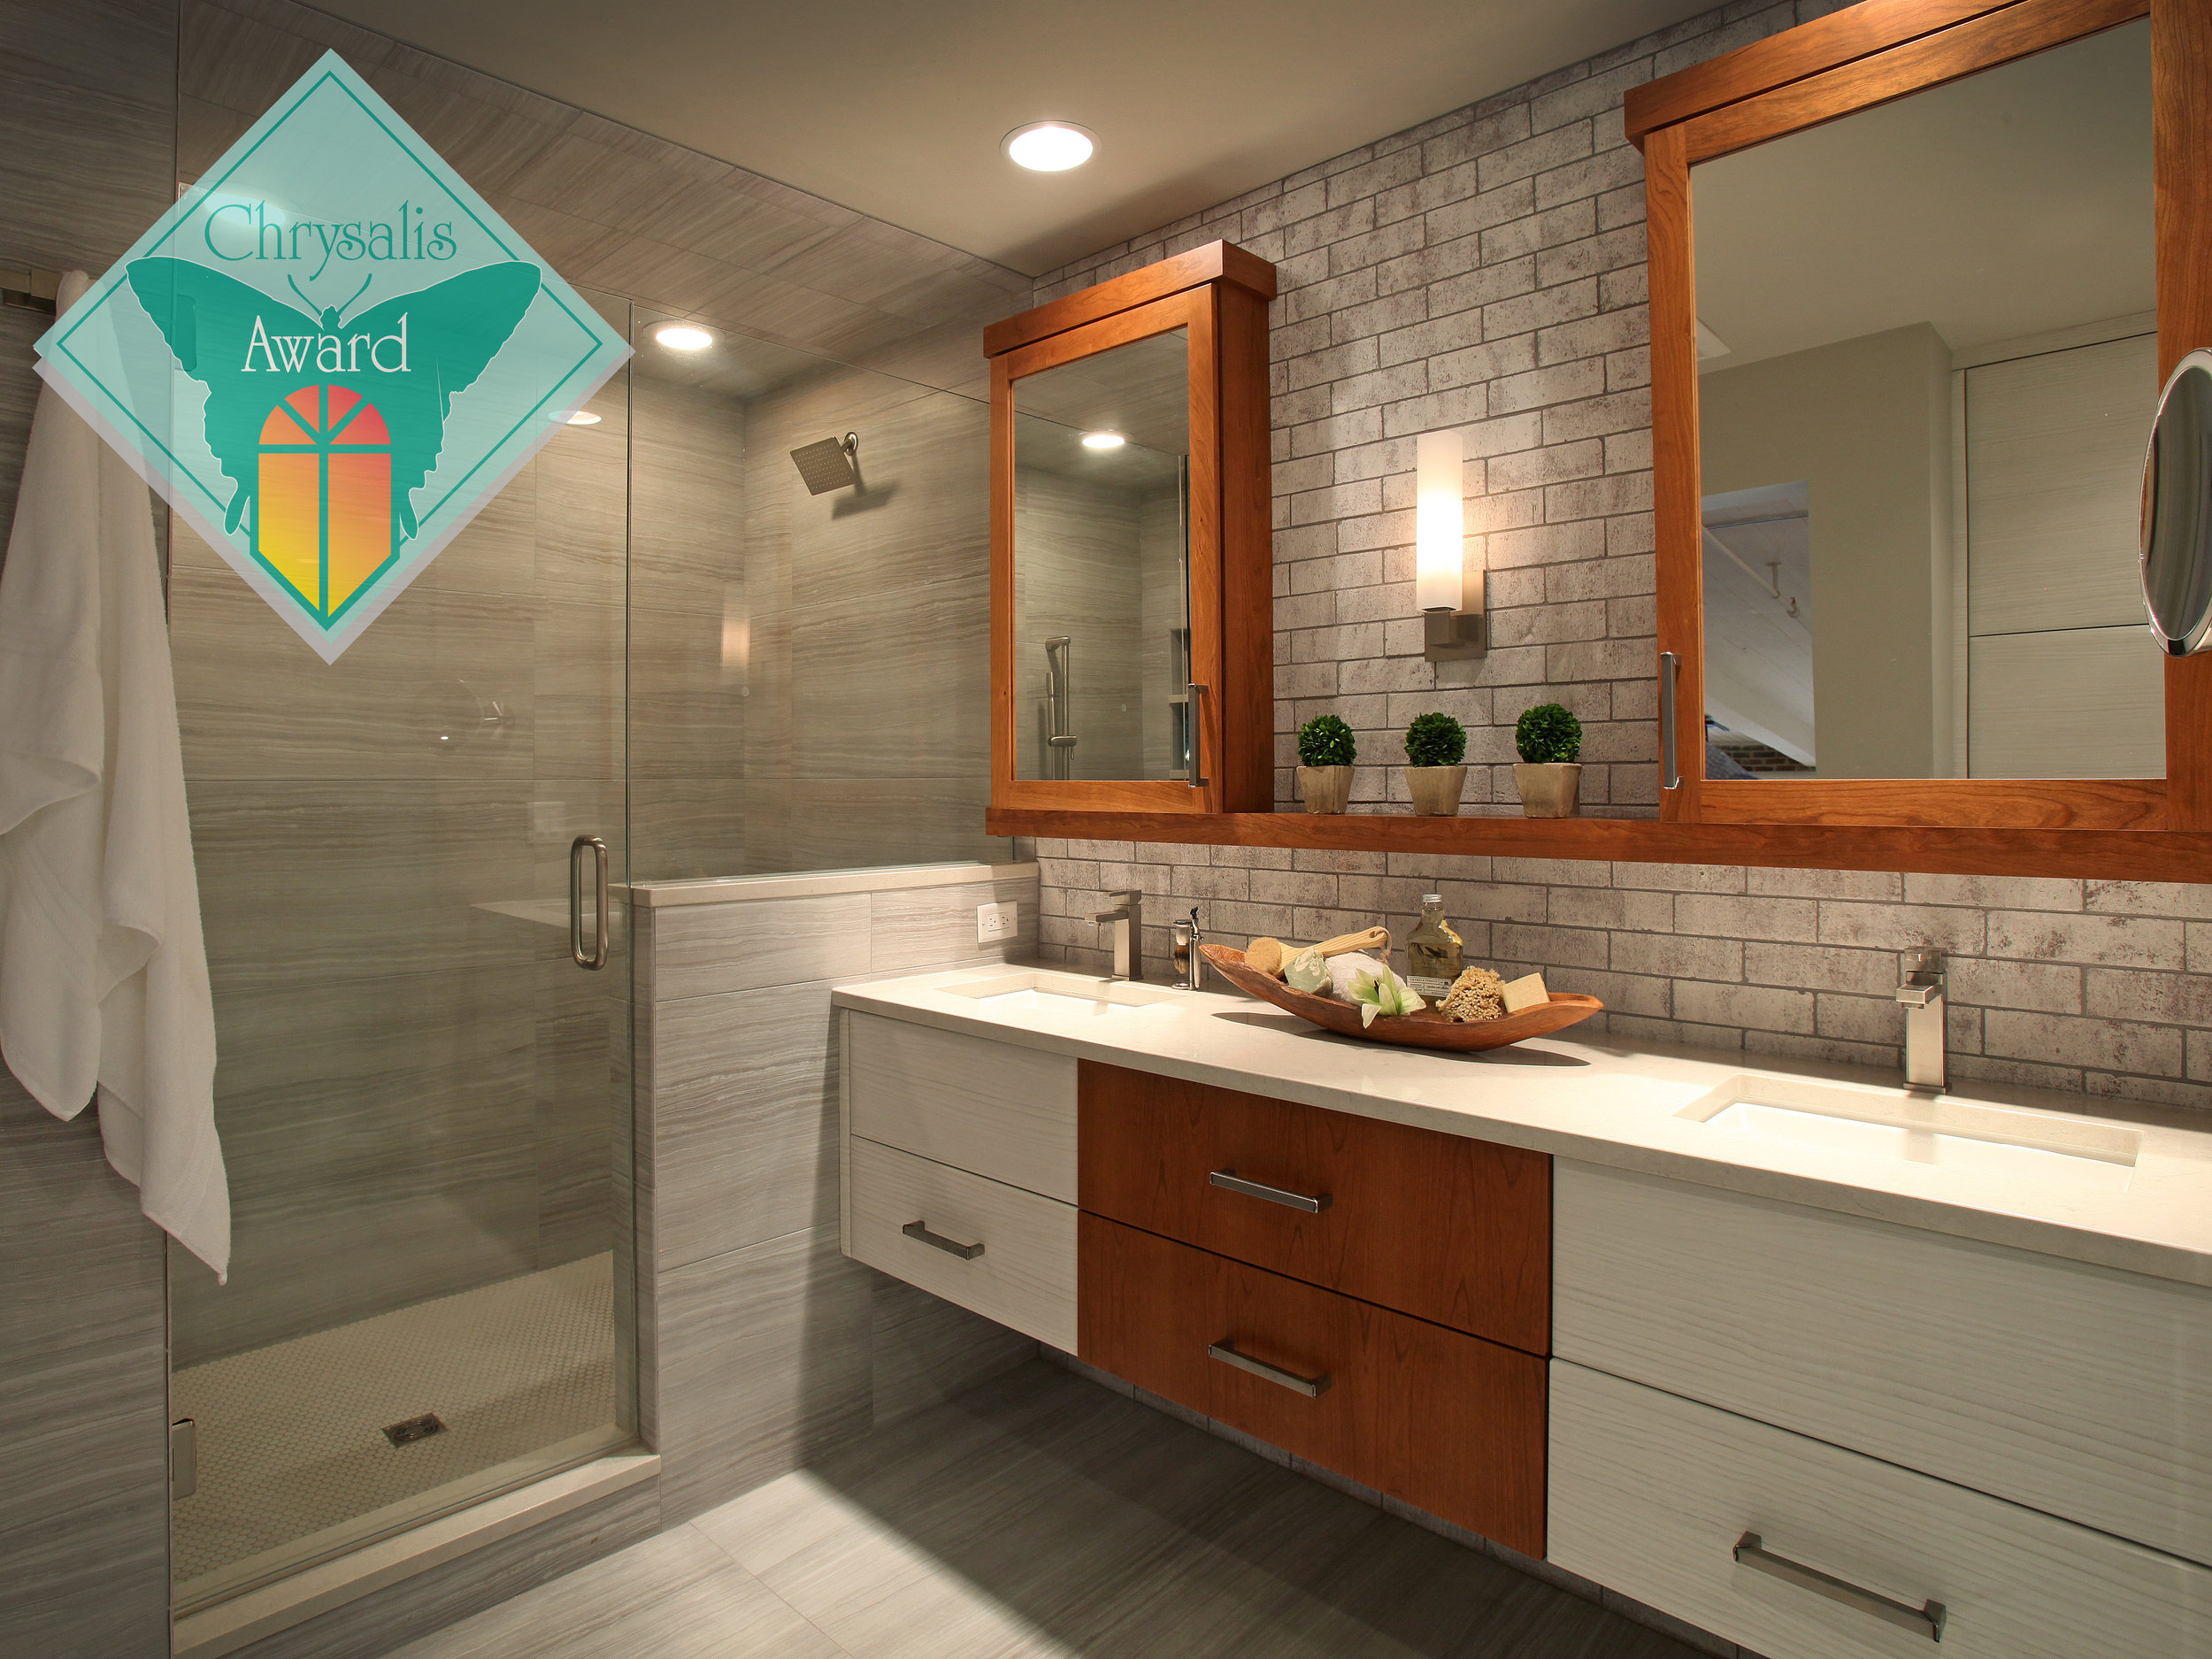 Gorum Master Bath with Chrysalis Logo.jpg